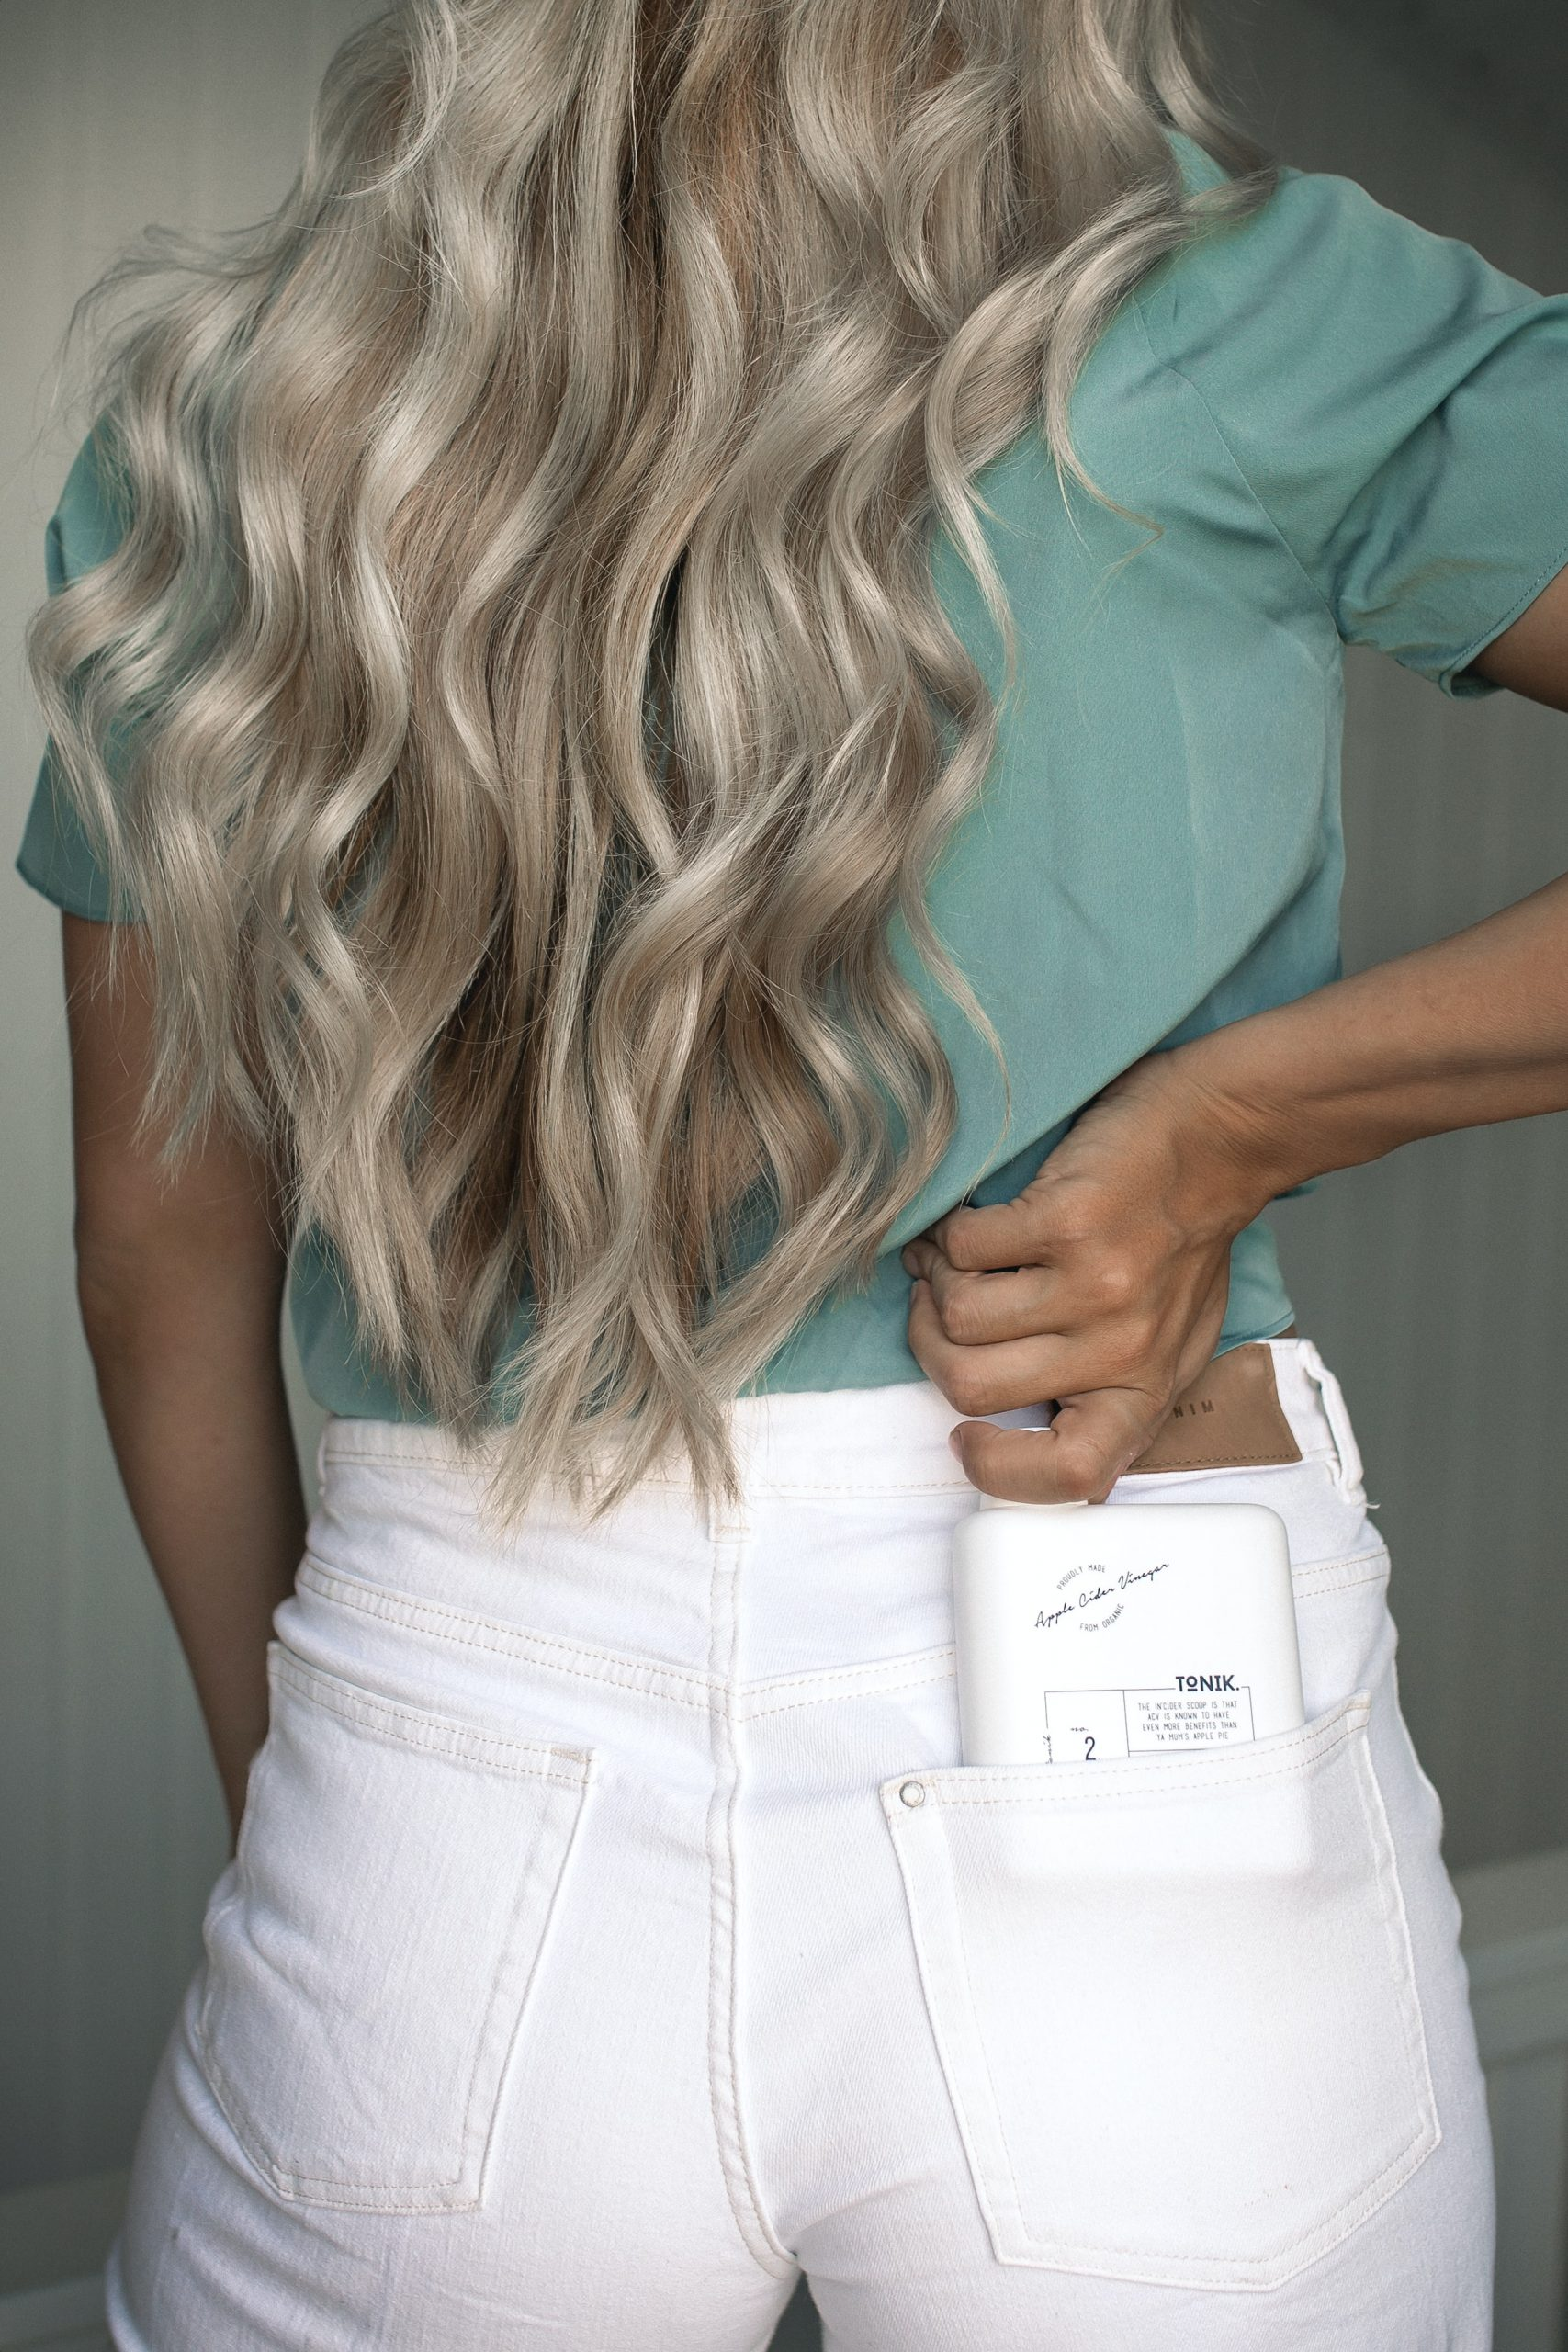 Blonde with Extensions to Waist